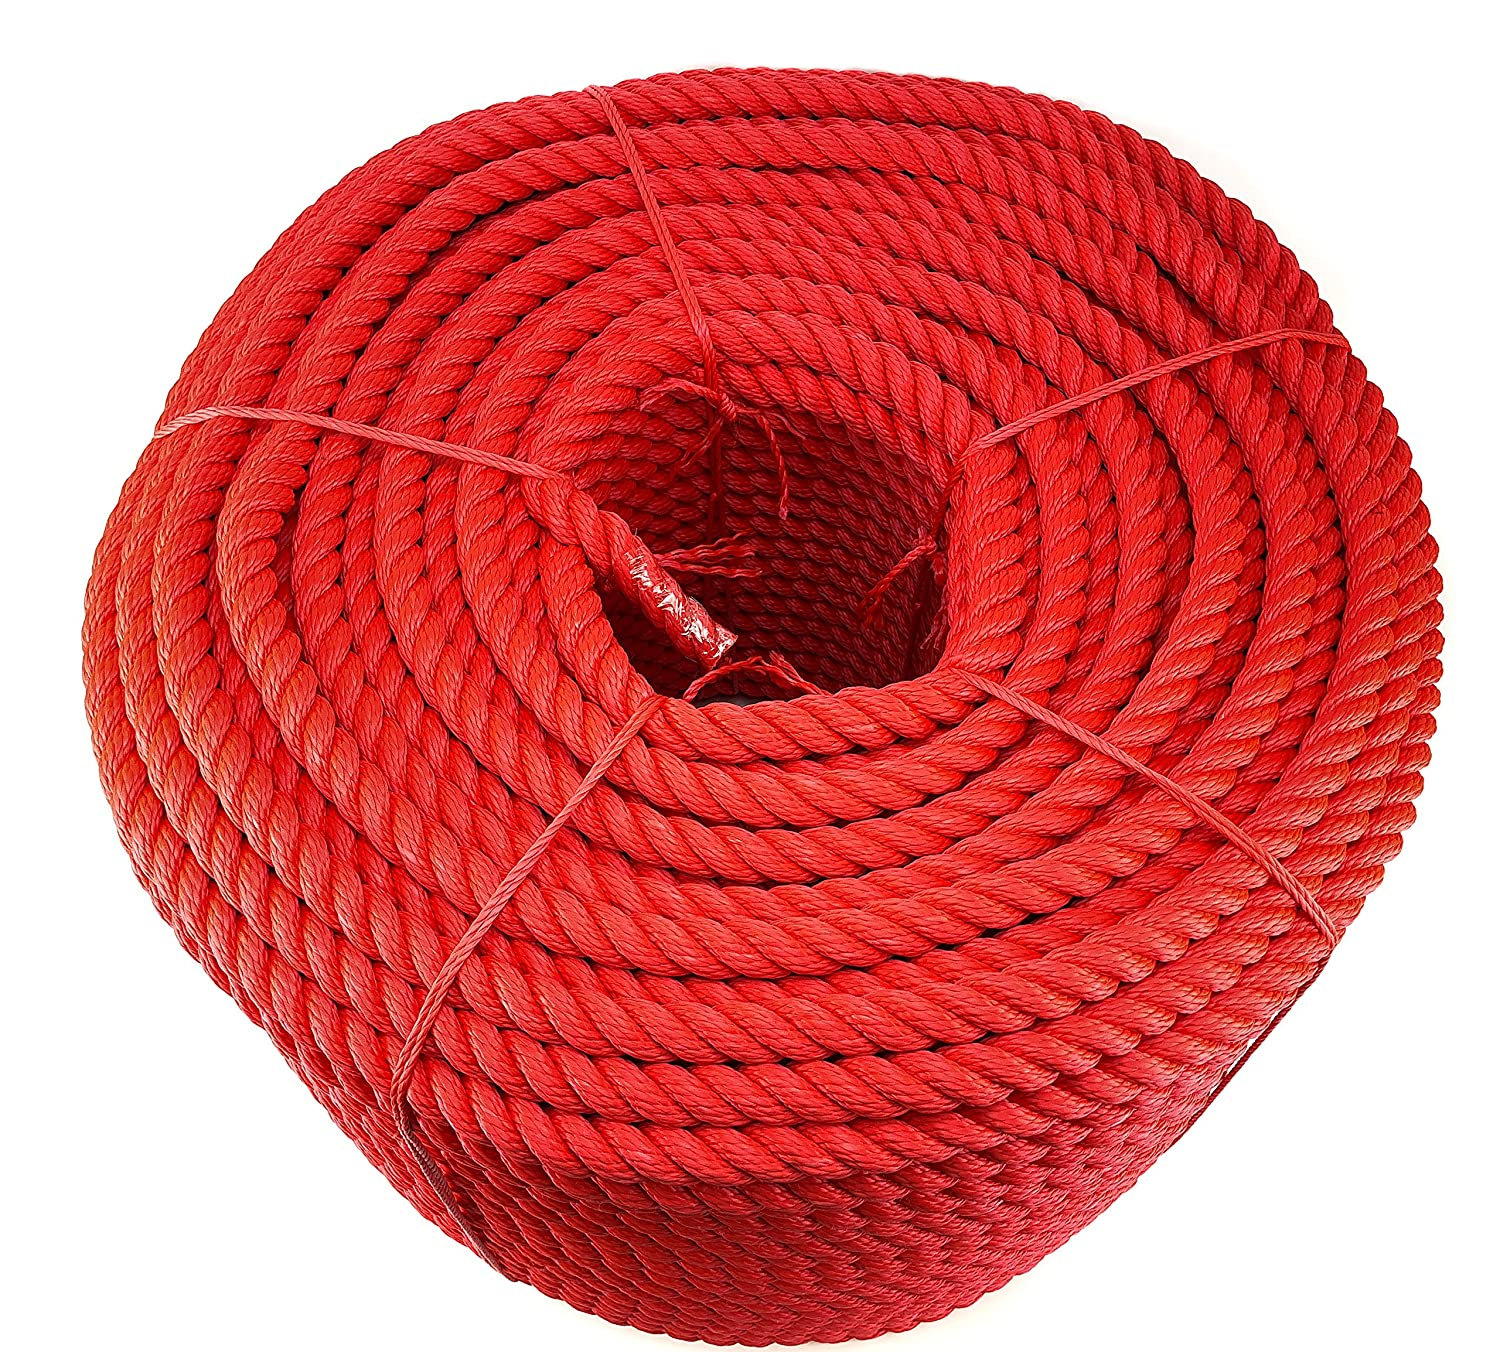 3 Strand Rope 14mm Red,Blue,Black Floating Multifilament Various Lengths